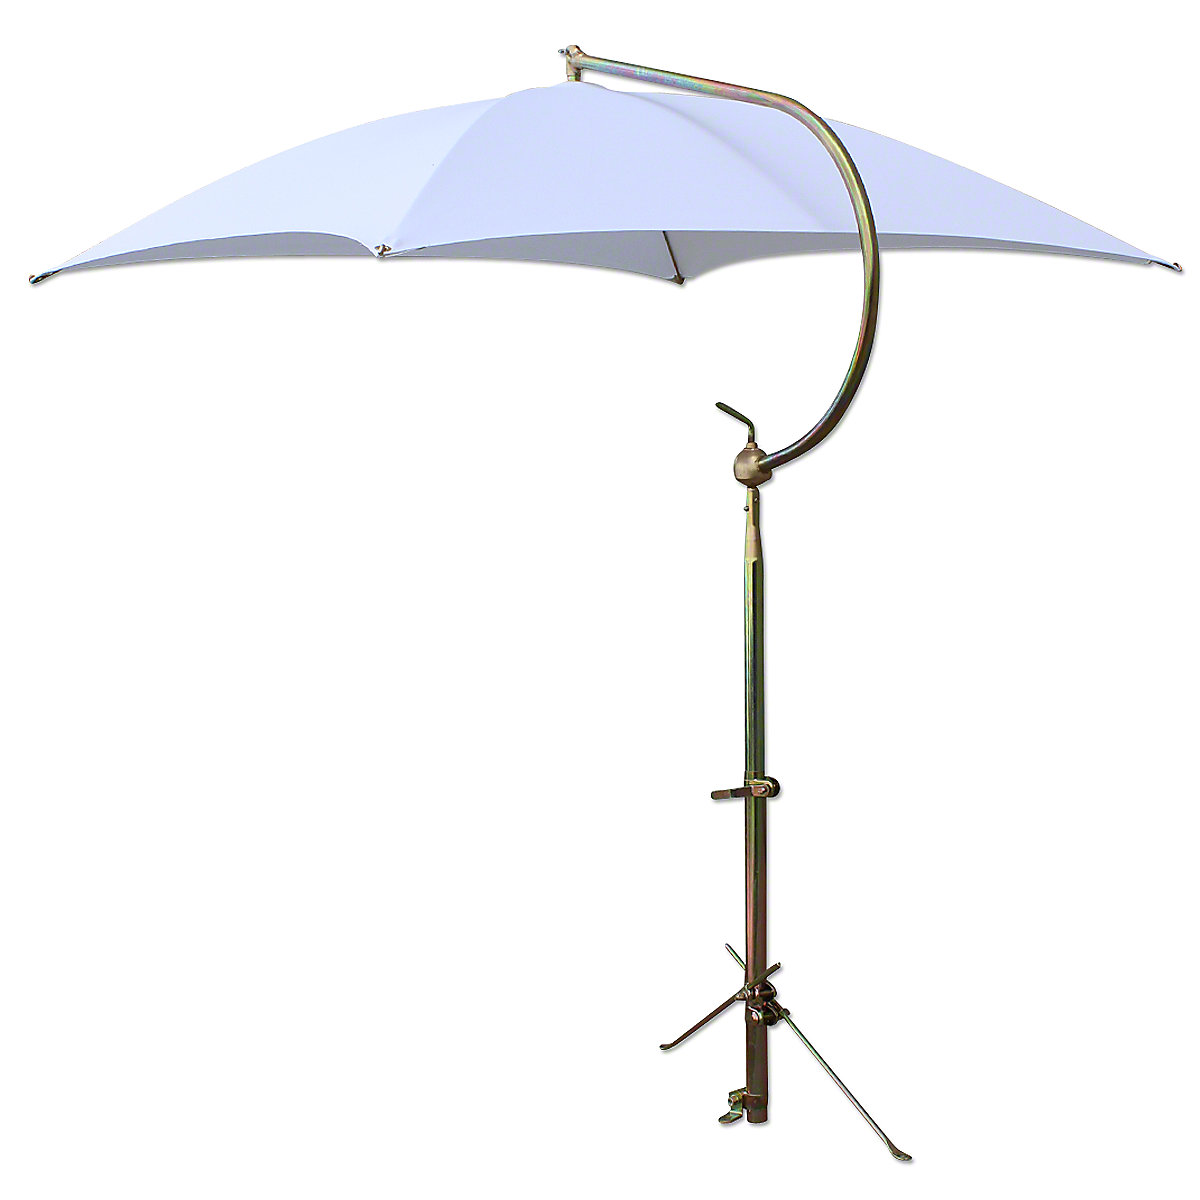 deluxe white tractor umbrella with mounting brackets